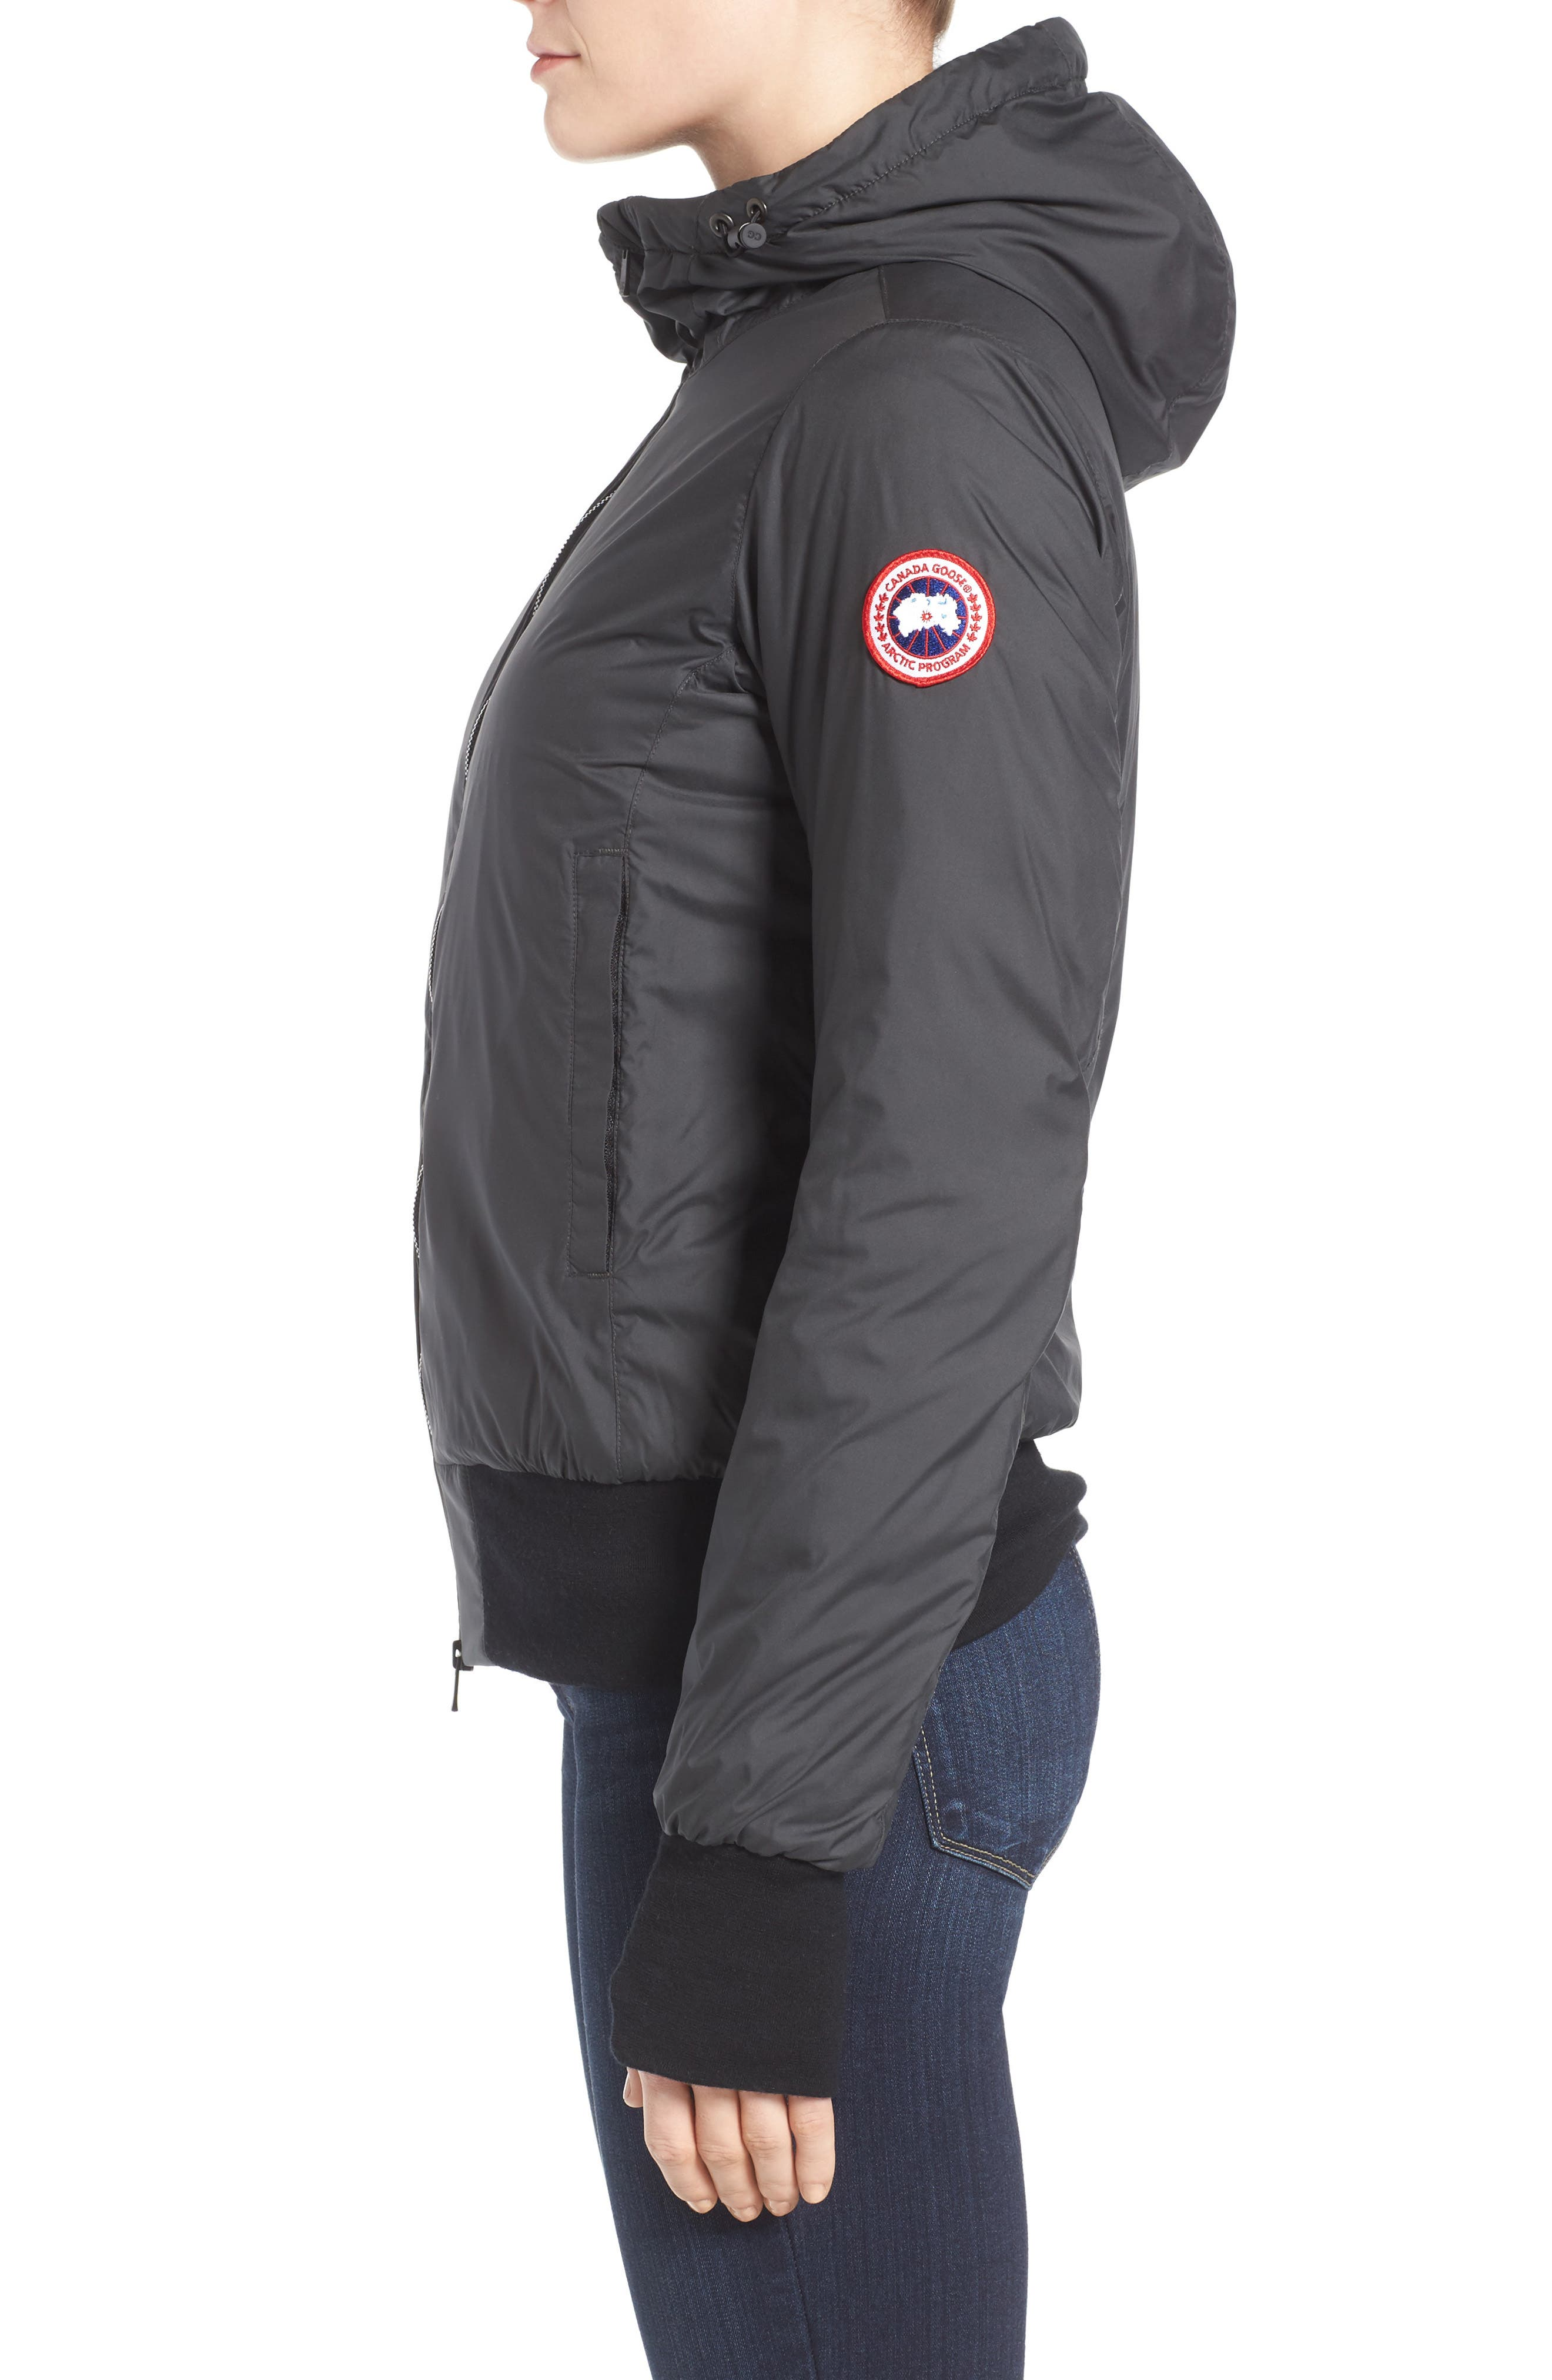 CANADA GOOSE, Dore Goose Down Hooded Jacket, Alternate thumbnail 4, color, BLACK